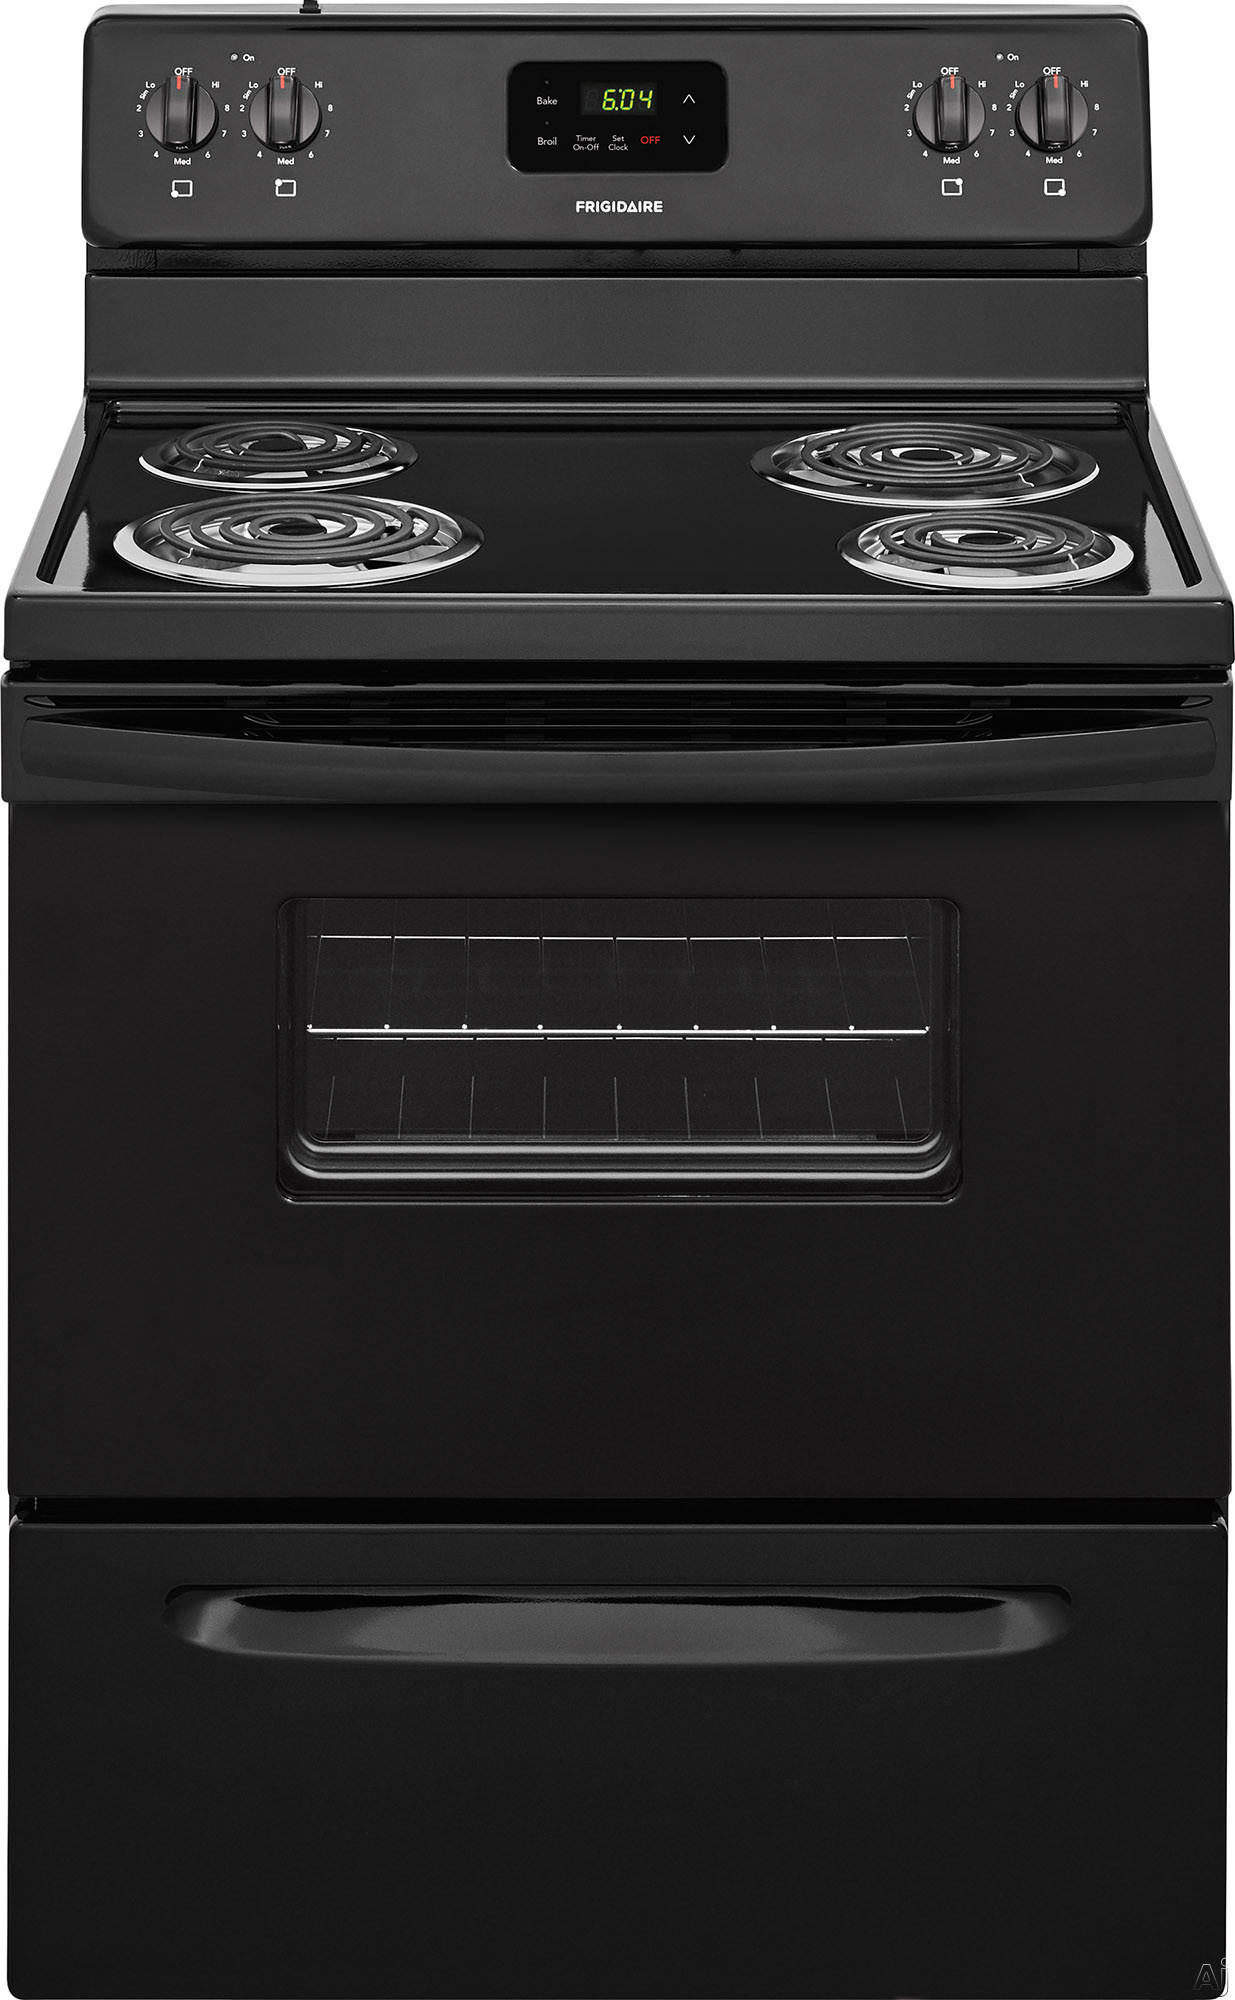 "Frigidaire FFEF3012TB 30 Inch Freestanding Electric Range with Hi-Lo Broil, Store-Moreâ""¢ Drawer, Electronic Timer, 4 Coil Burners and 4.8 cu. ft. Capacity: Black"